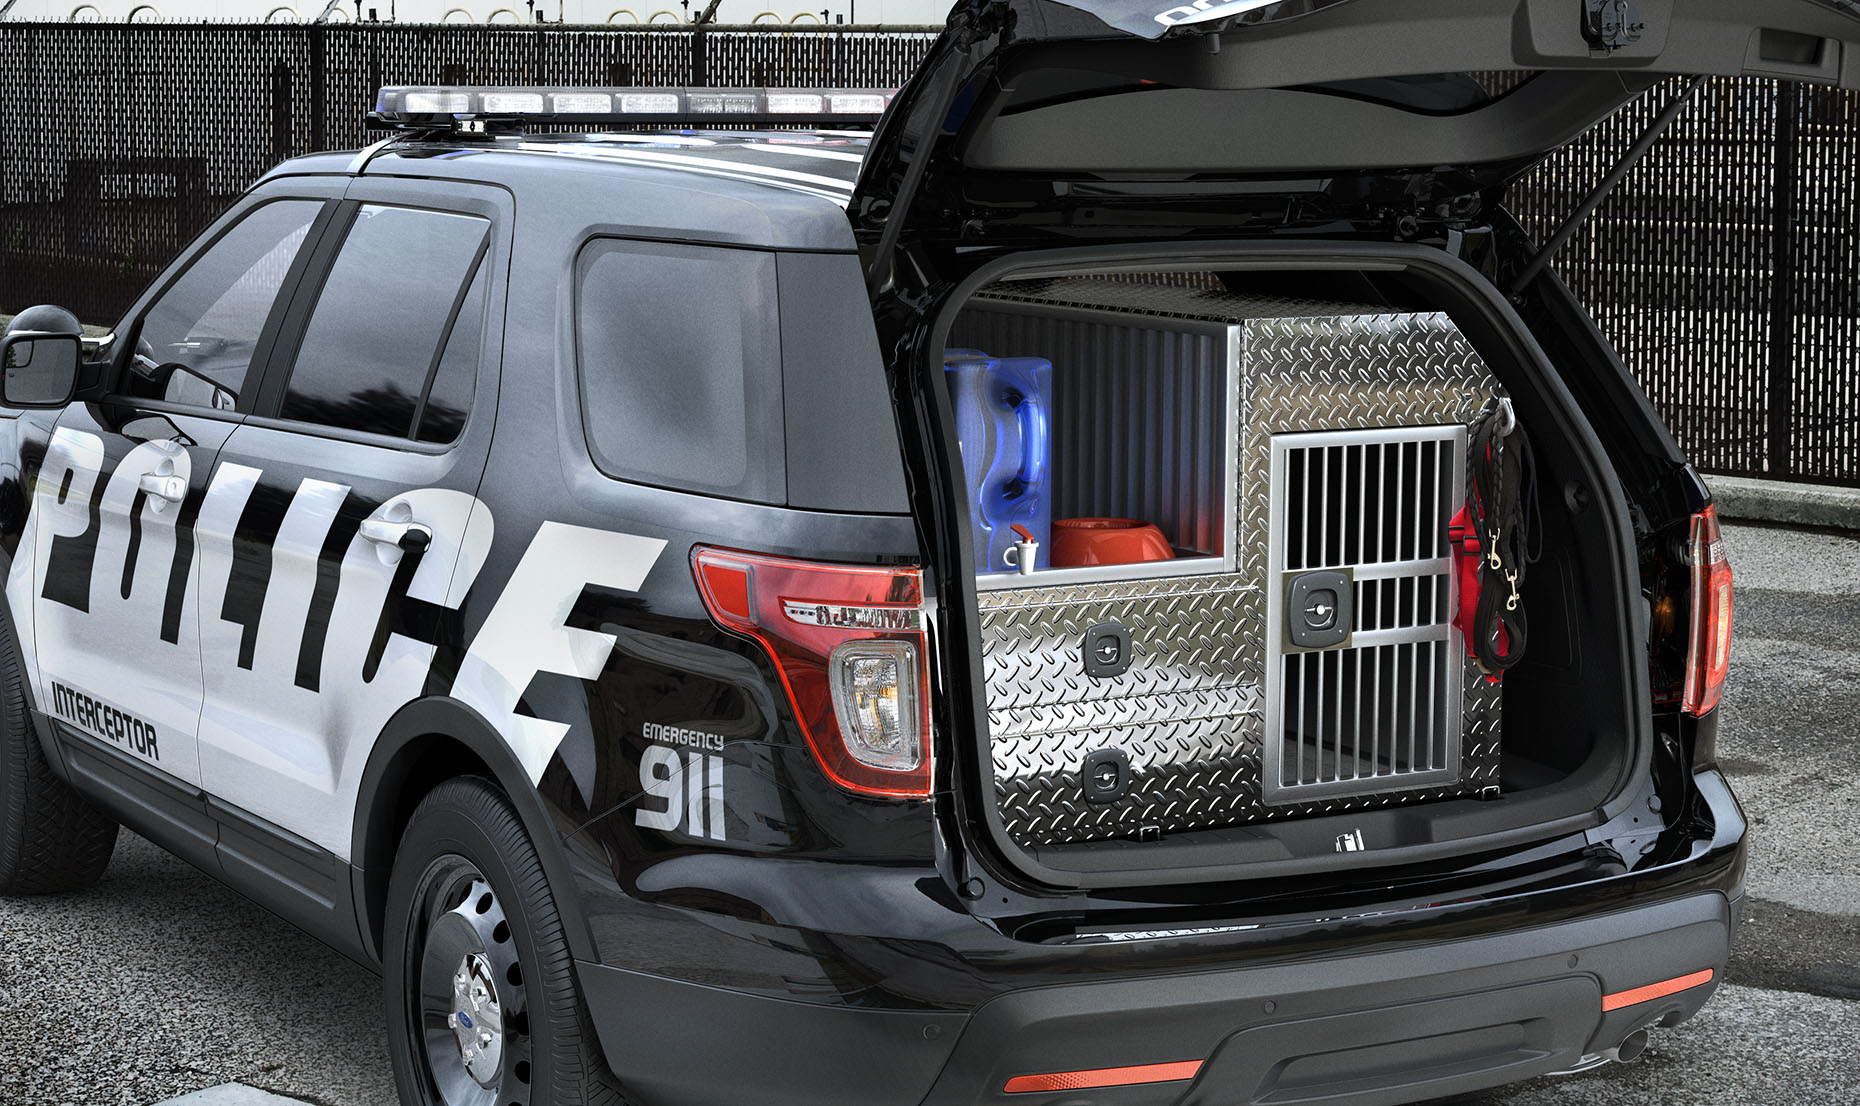 FORD EXPLORER K9 UNIT POLICE DOGS.jpg